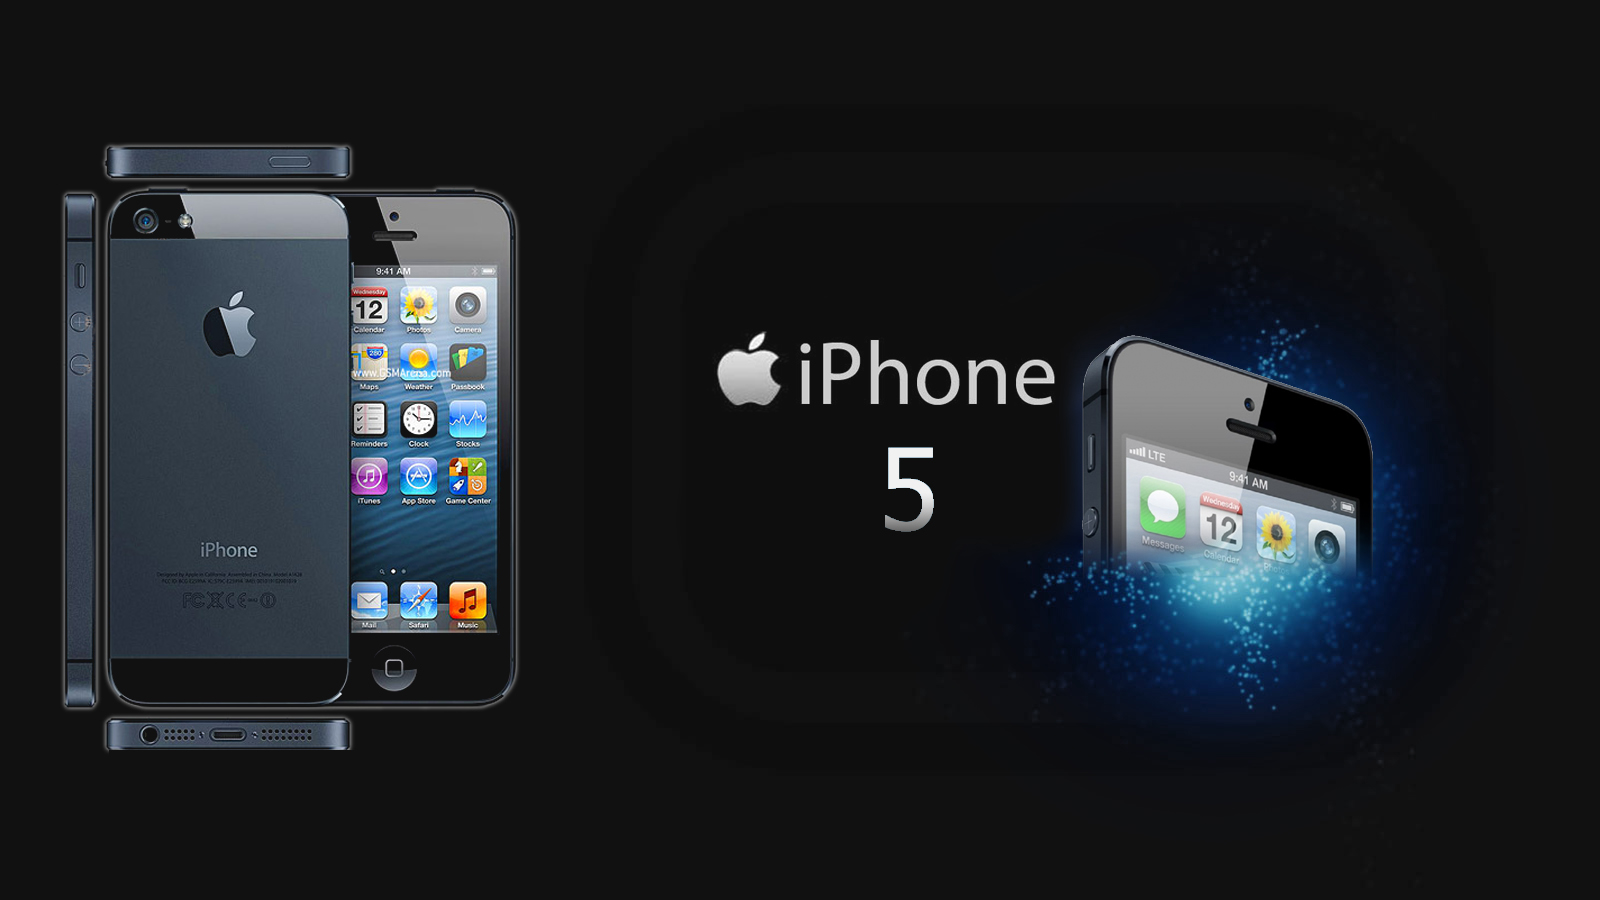 Apple iPhone Wallpapers for New iPhone 5 and iPhone 5S 1600x900